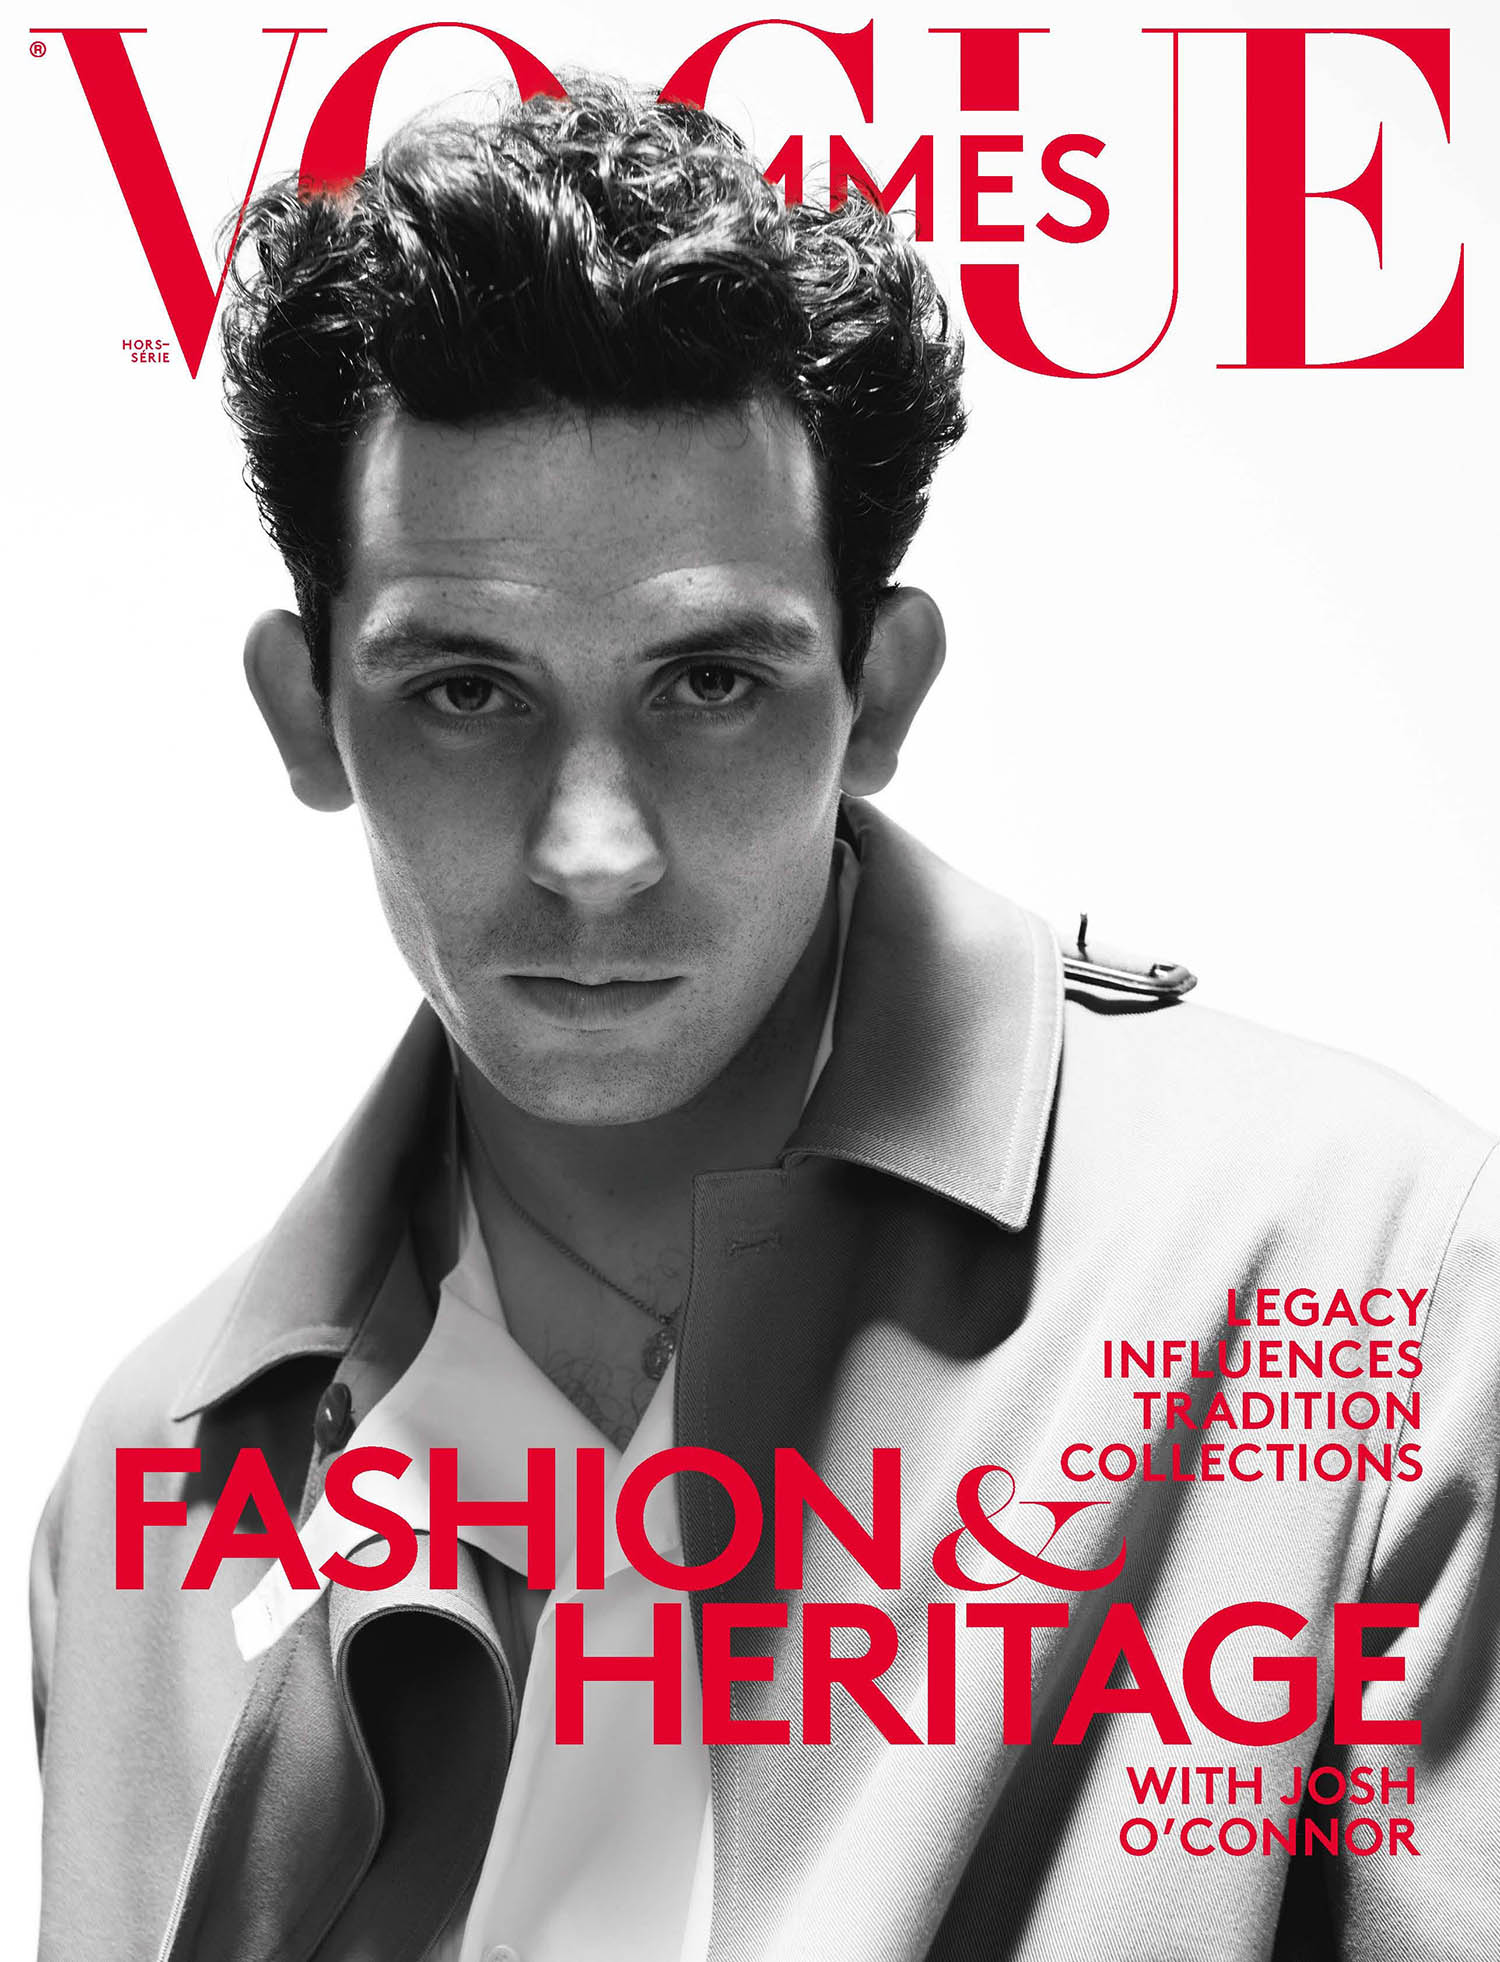 Josh O'Connor covers Vogue Hommes Spring Summer 2021 by David Sims